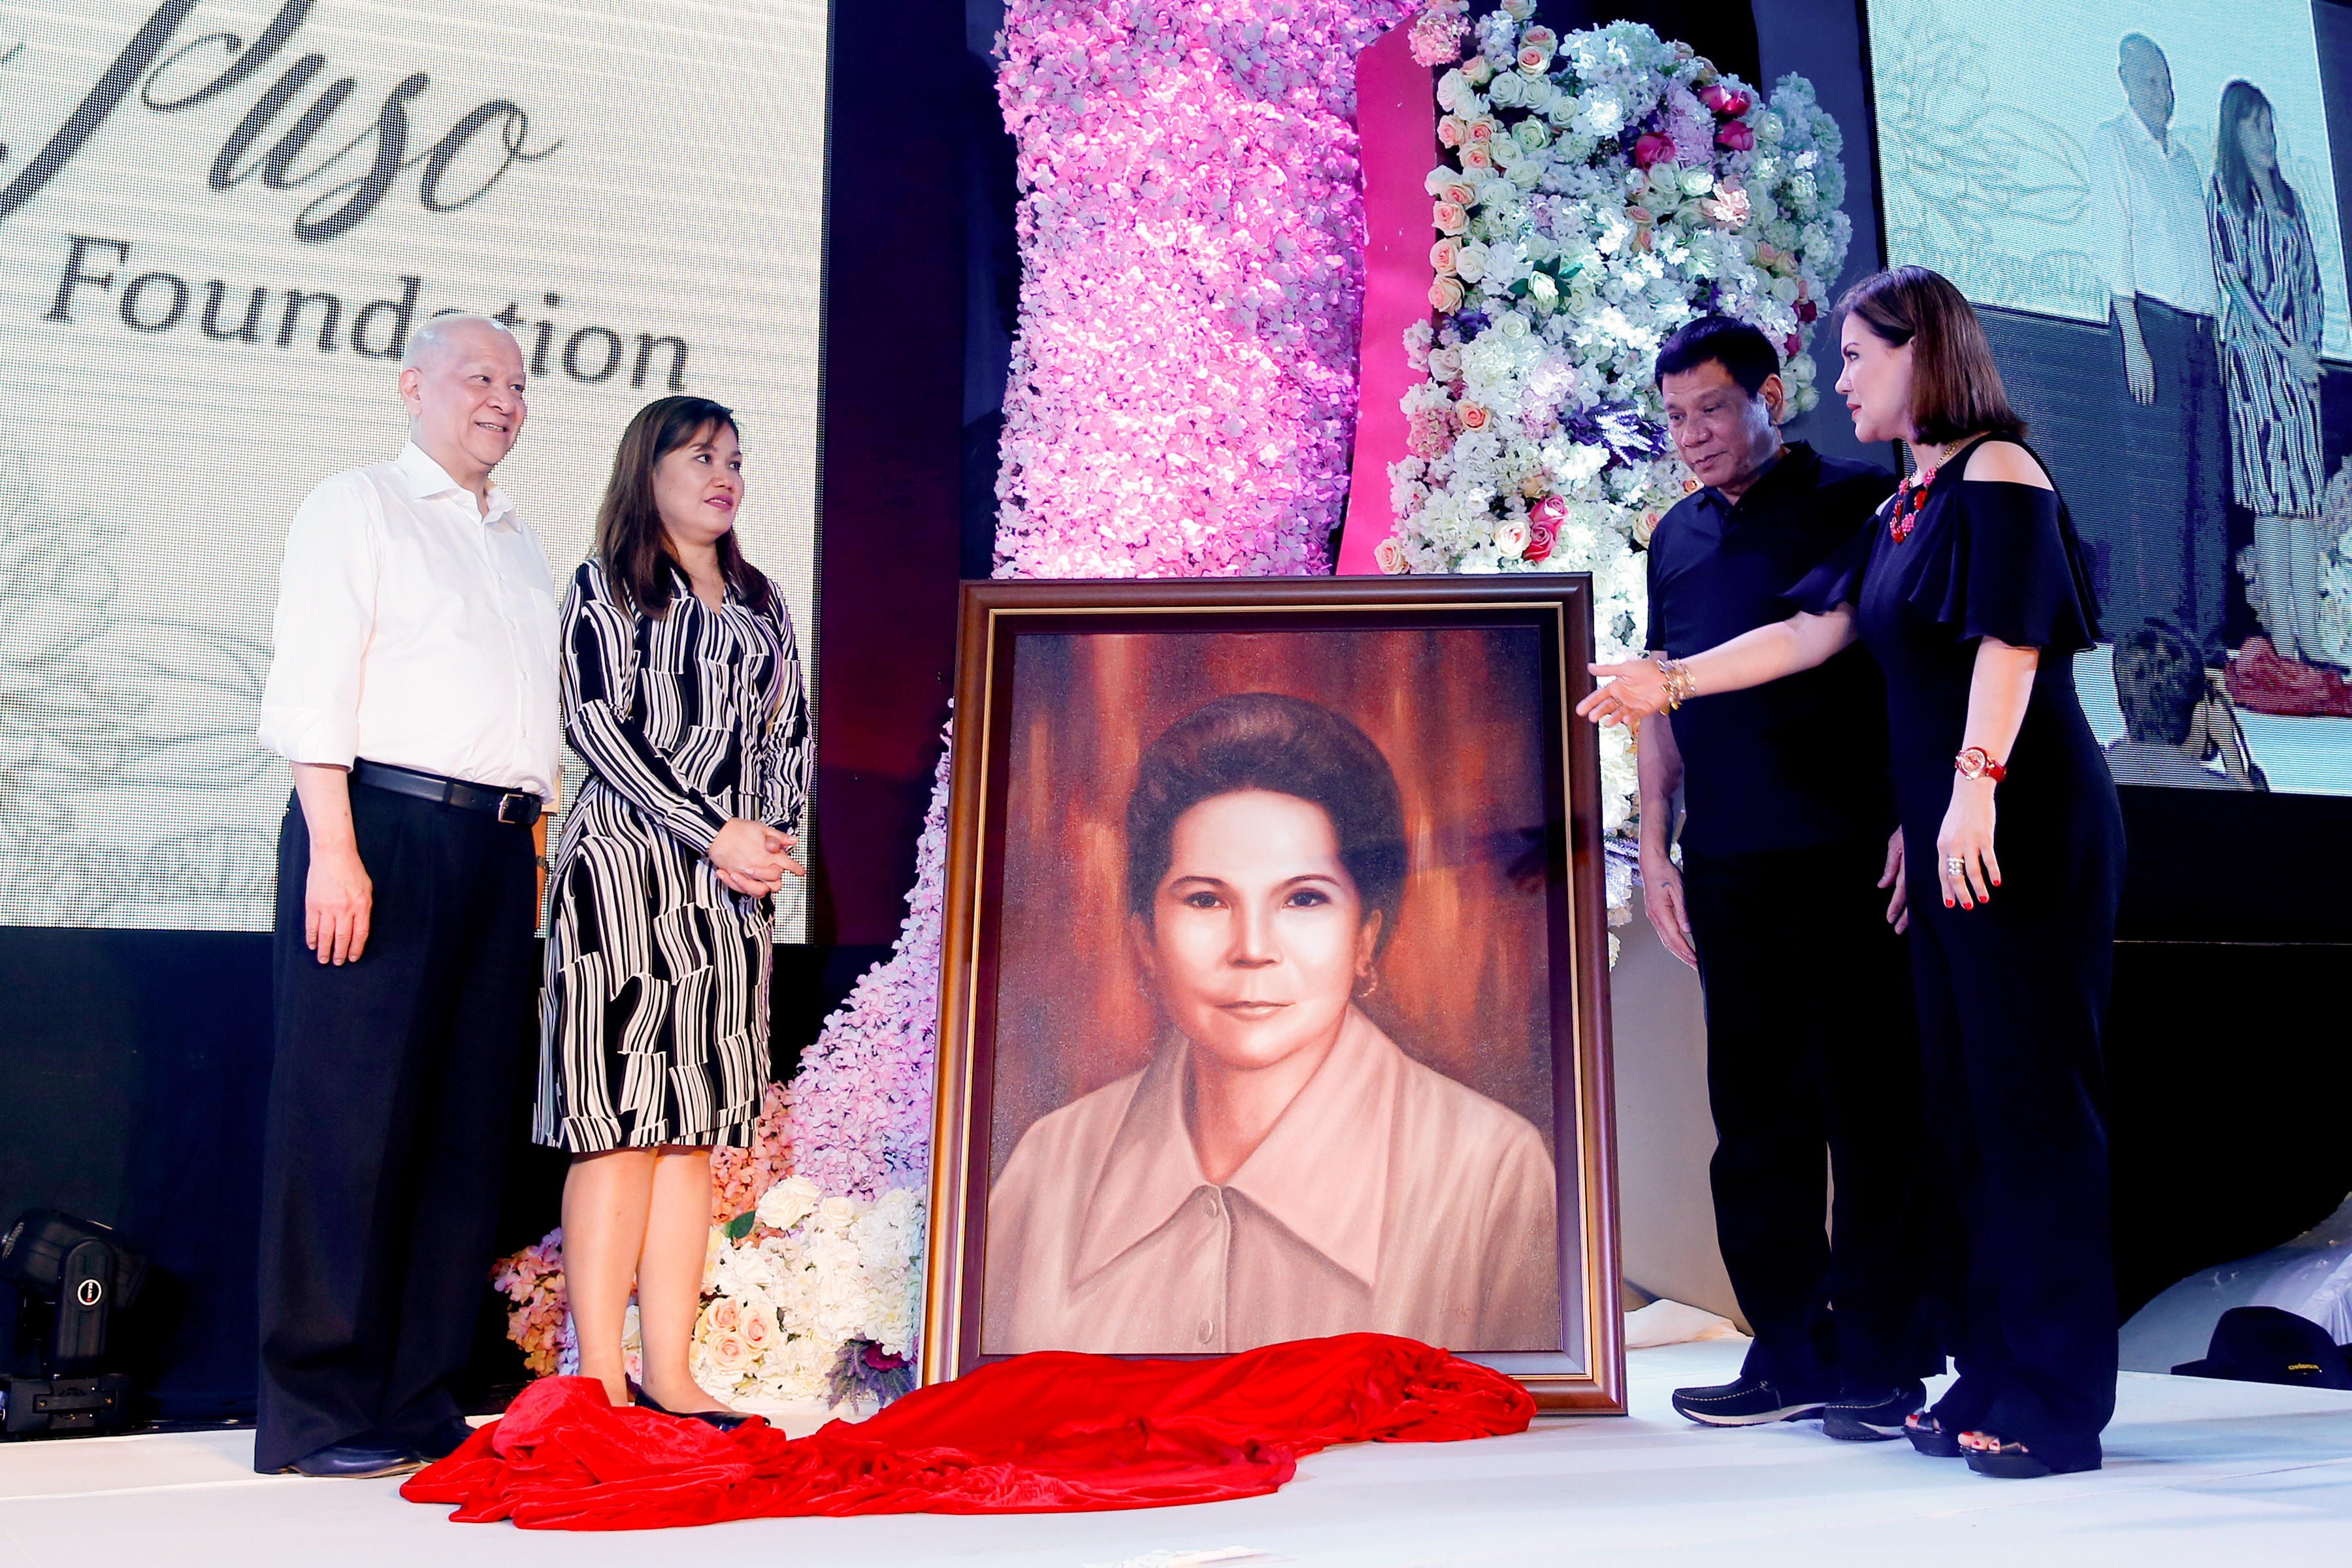 FOUNDATION LAUNCH. President Rodrigo Duterte, accompanied by his common-law wife Honeylet Avanceu00f1a, accepts a portrait of his late mother Soledad Duterte from businessman Ramon Ang Photo by Richard Madelo/ Presidential Photo